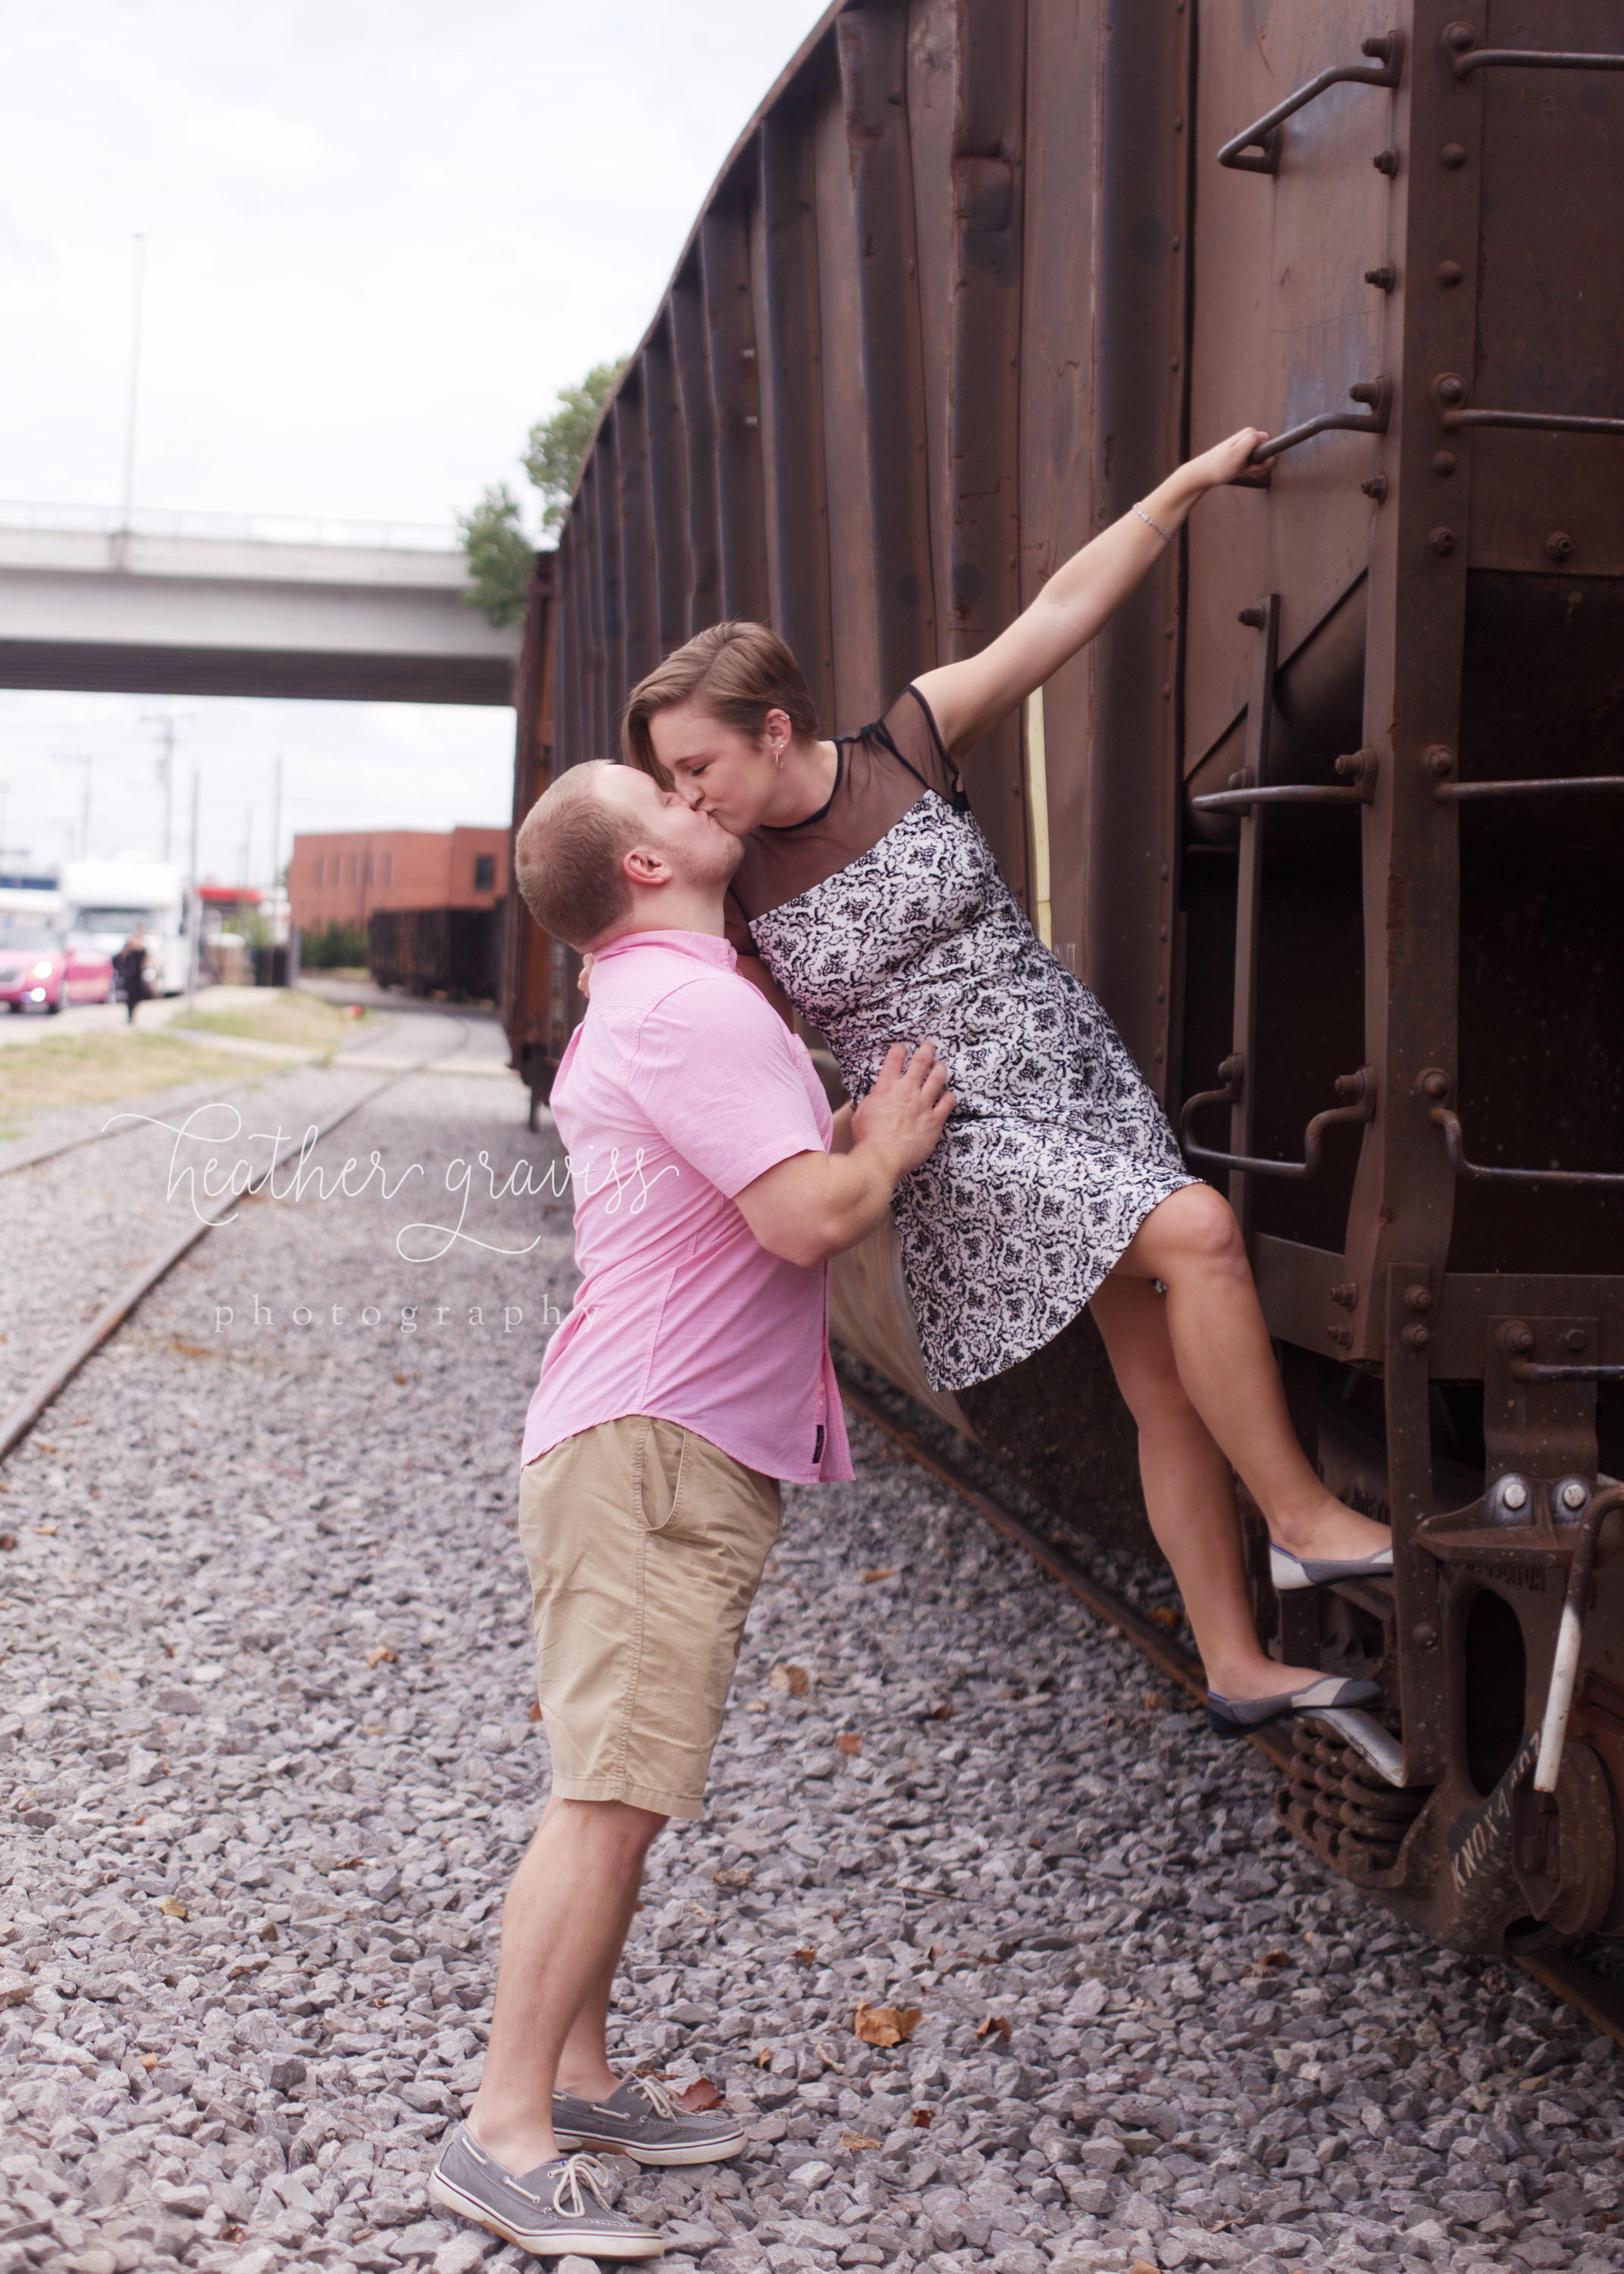 kissing-on-train.jpg